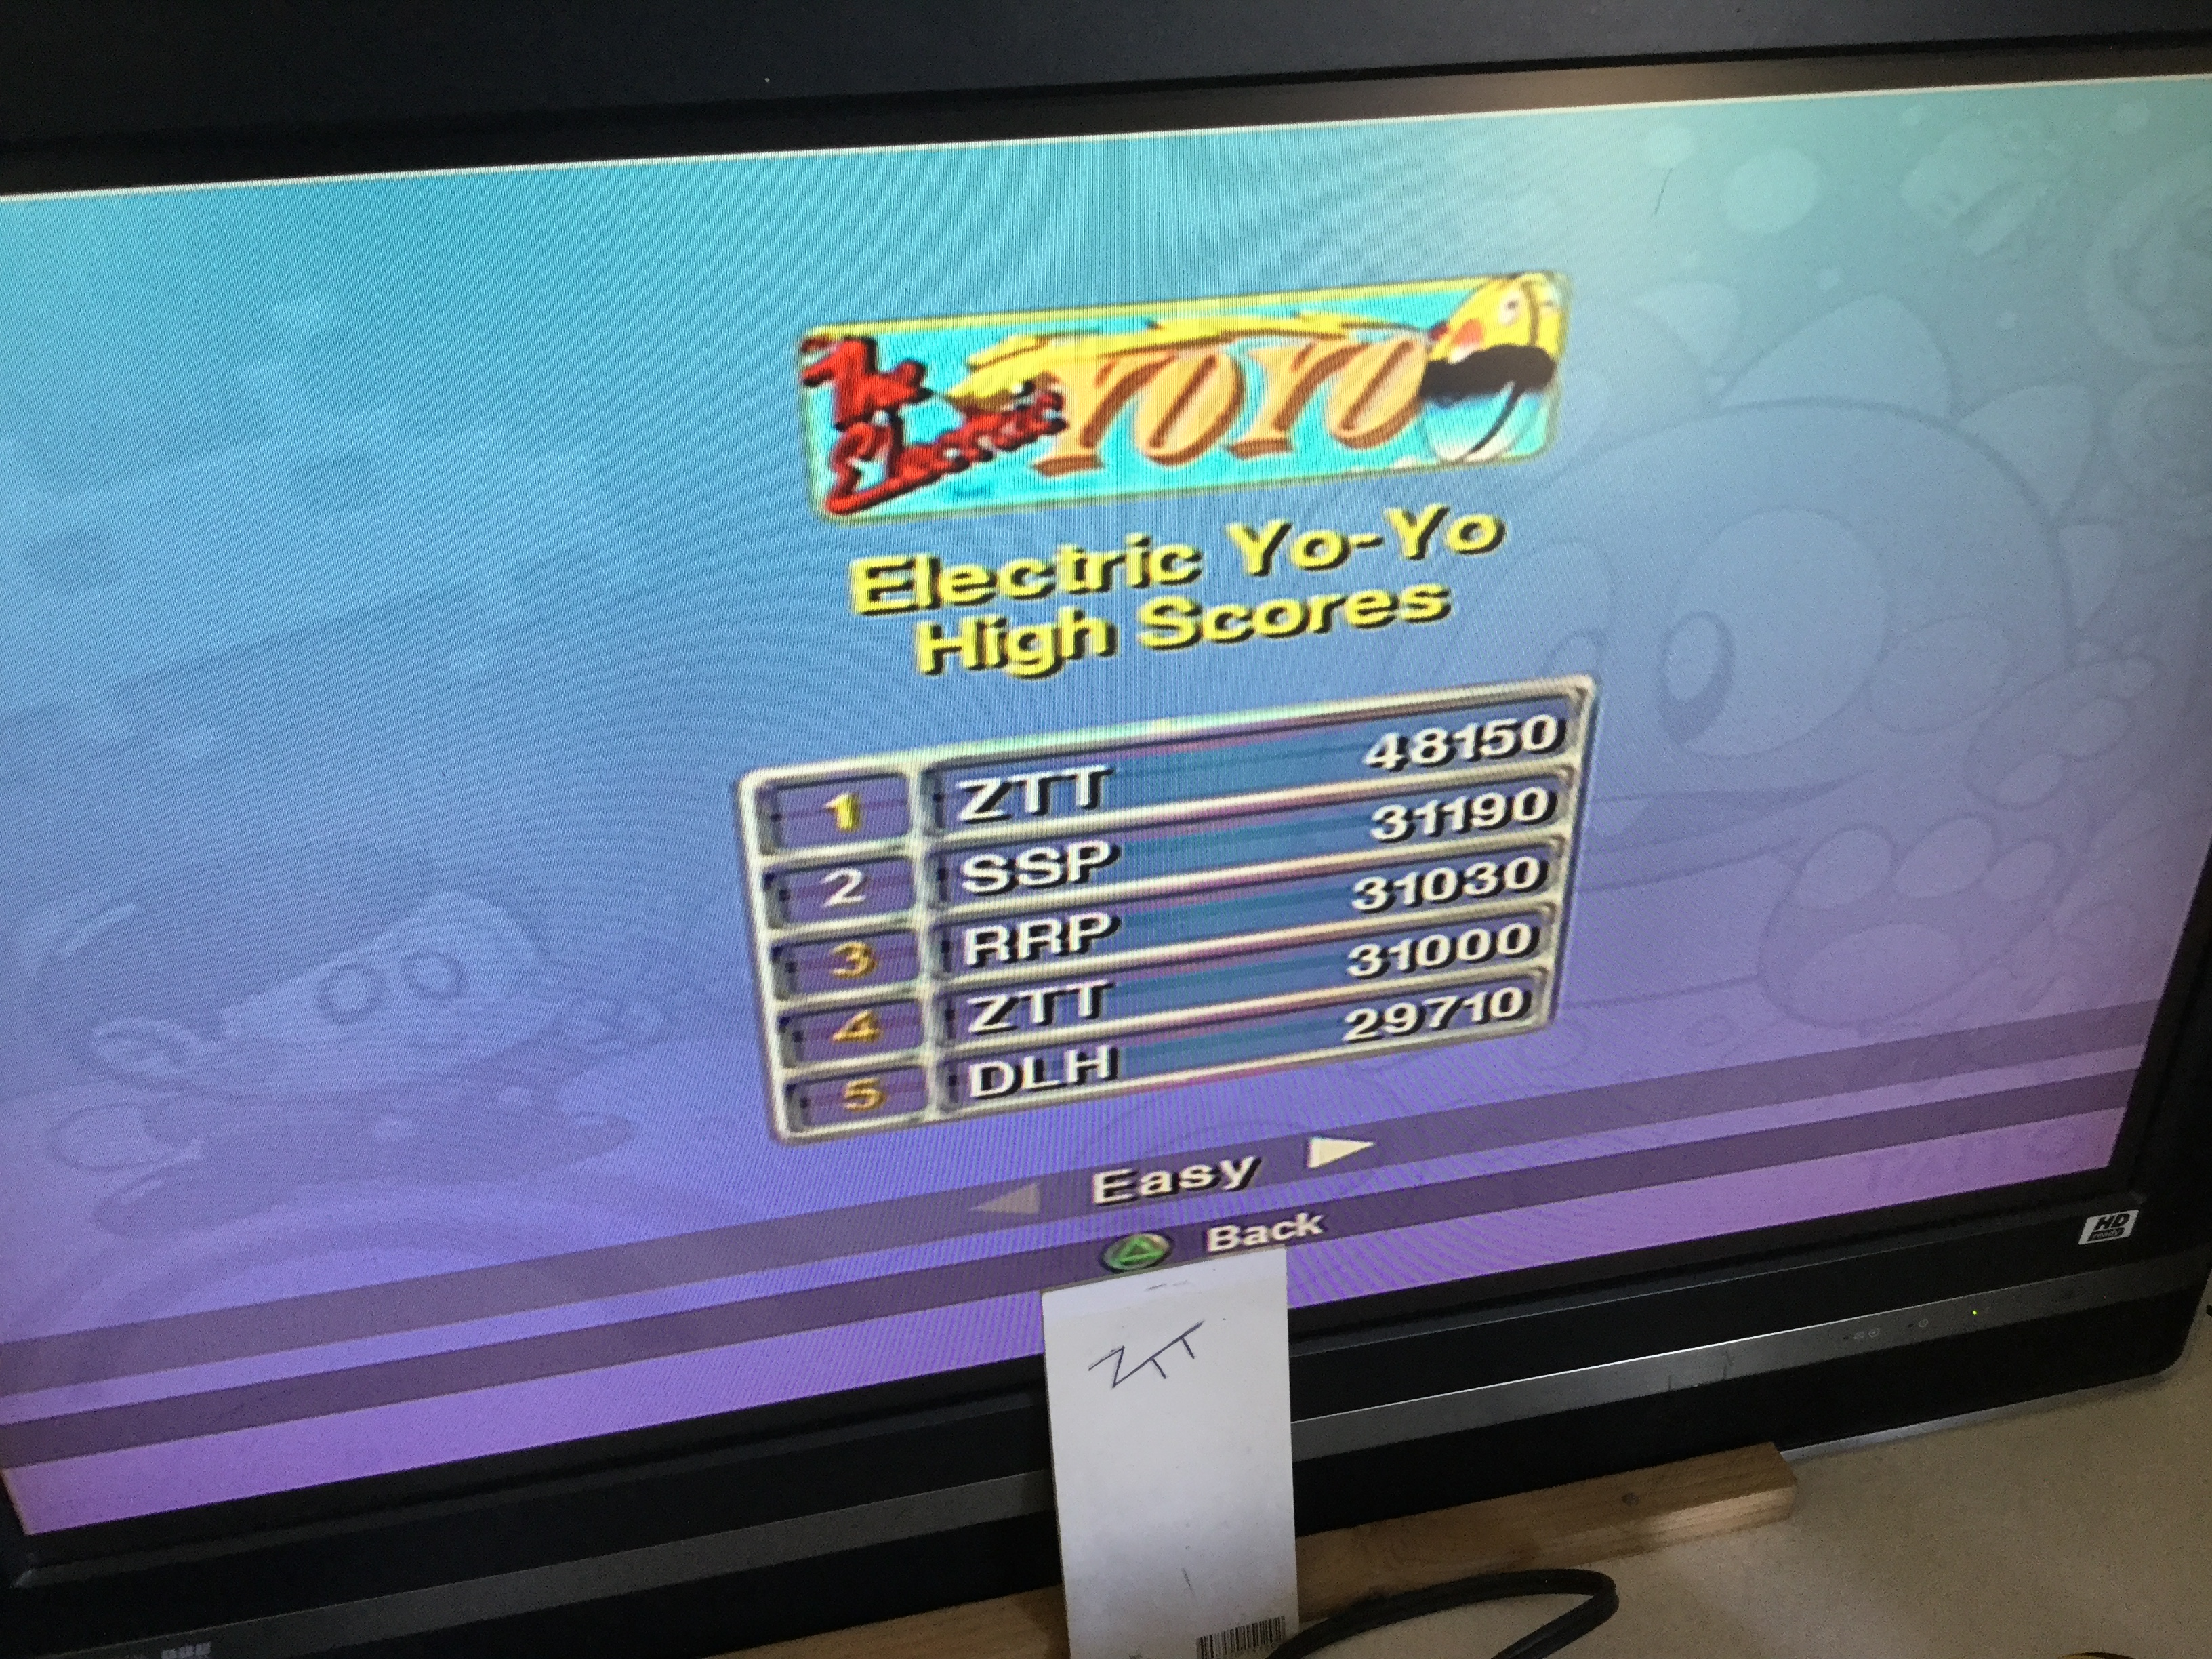 Frankie: Taito Legends: The Electric Yo-Yo [Easy] (Playstation 2) 48,150 points on 2018-03-18 08:20:44